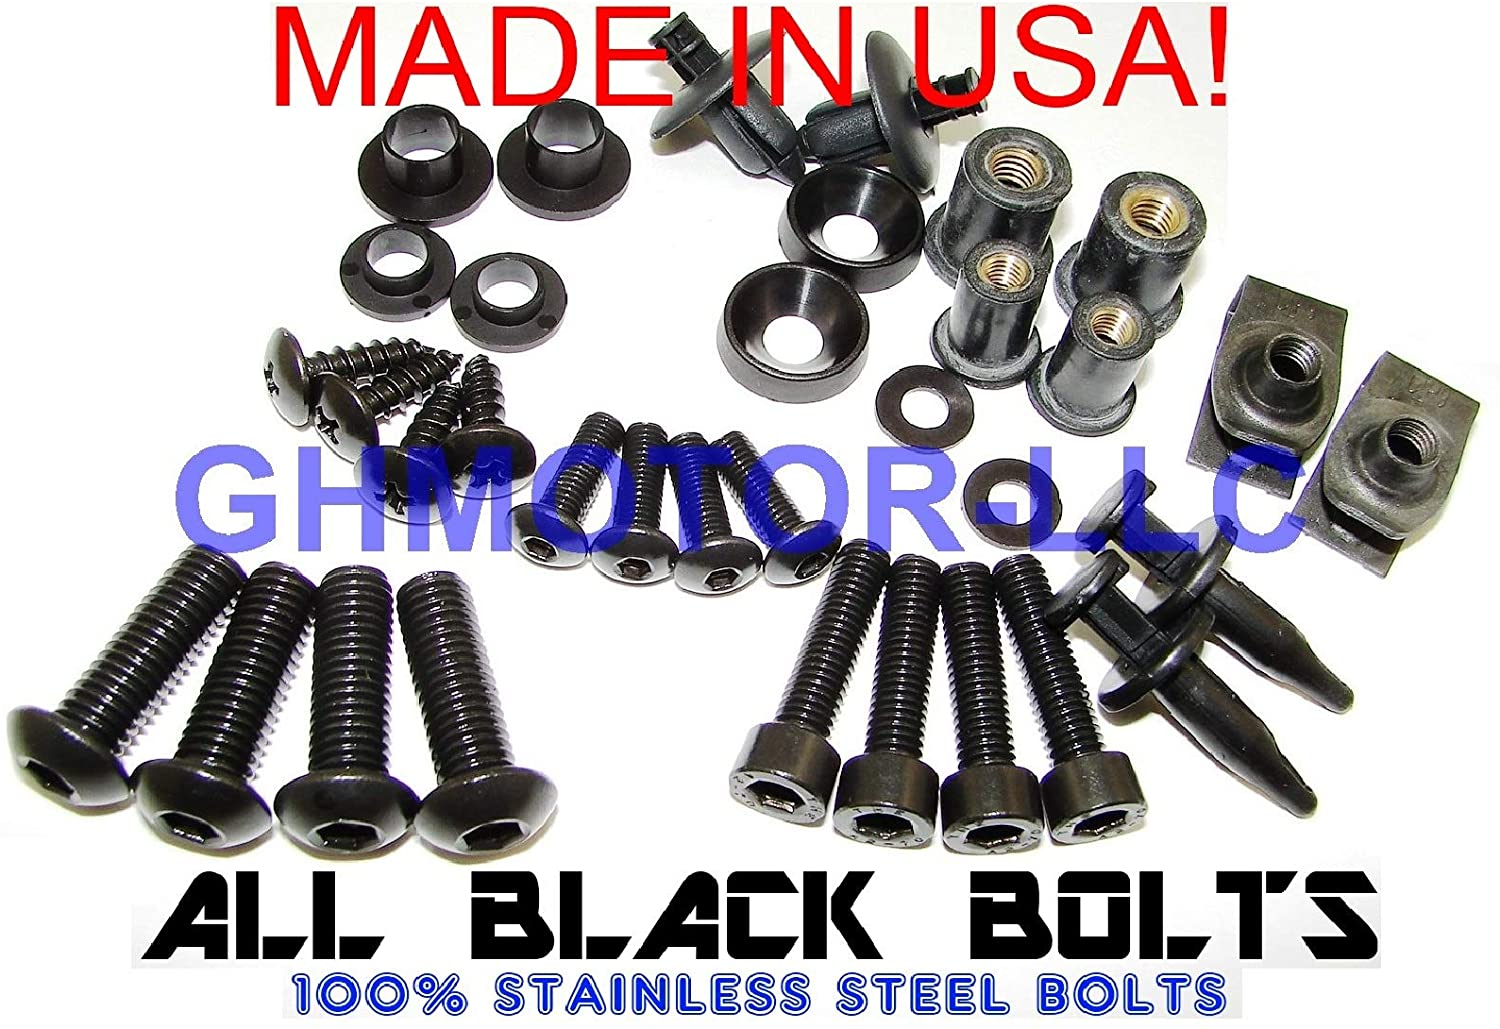 GHMotor Complete Fairings Bolts Screws Fasteners Kit Set Made in USA for 2002 2003 KAWASAKI ZX9R ZX-9R - Black